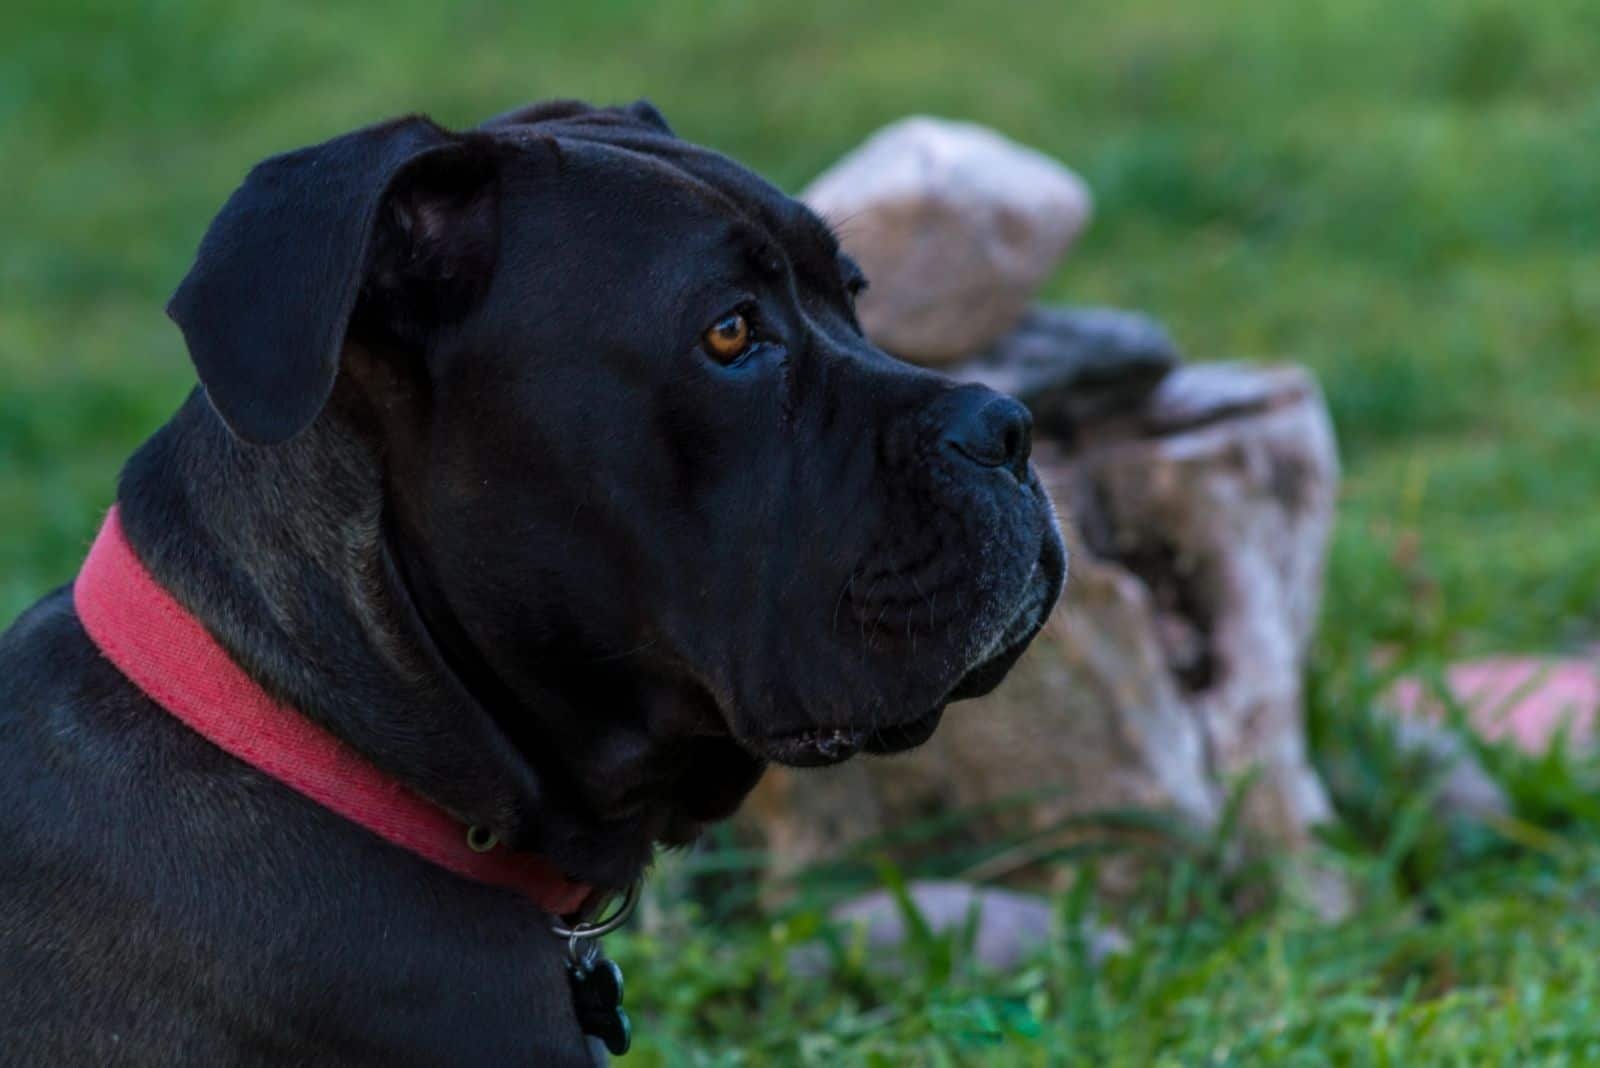 great cane corso dog in close up sideview image